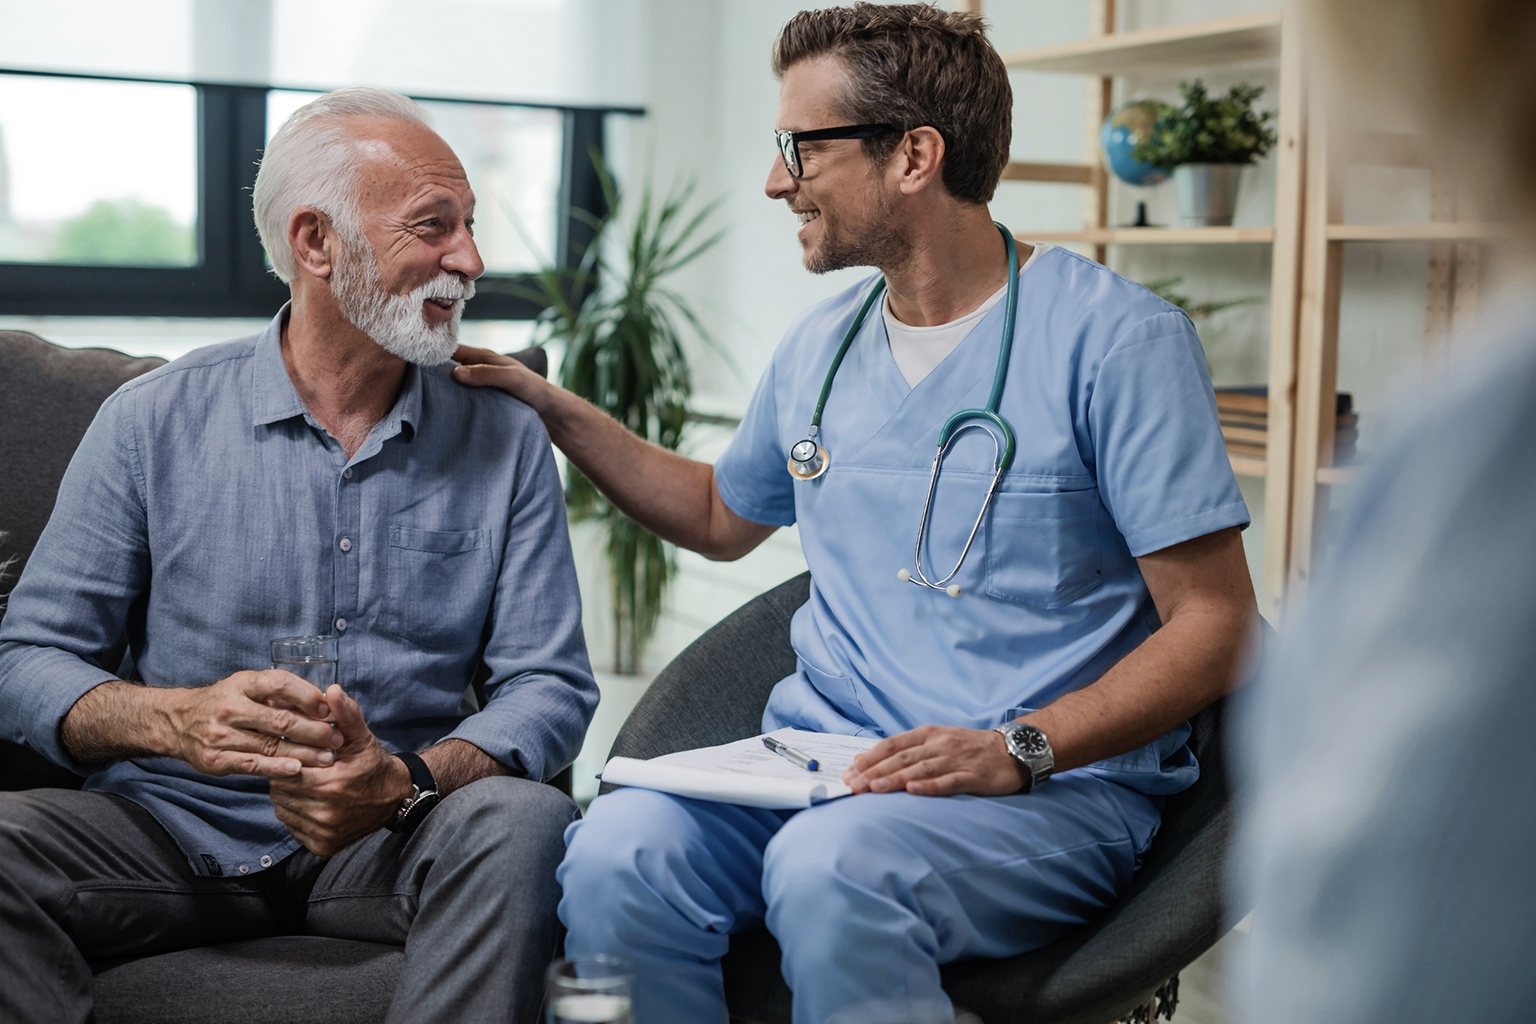 STDs - UTIs - Wound Care - Cold and Flu - Diabetes - Arthritis - Asthma - Medical Care Services - Optimal Health Medical Clinic - primary care doctor - primary care gilbert az